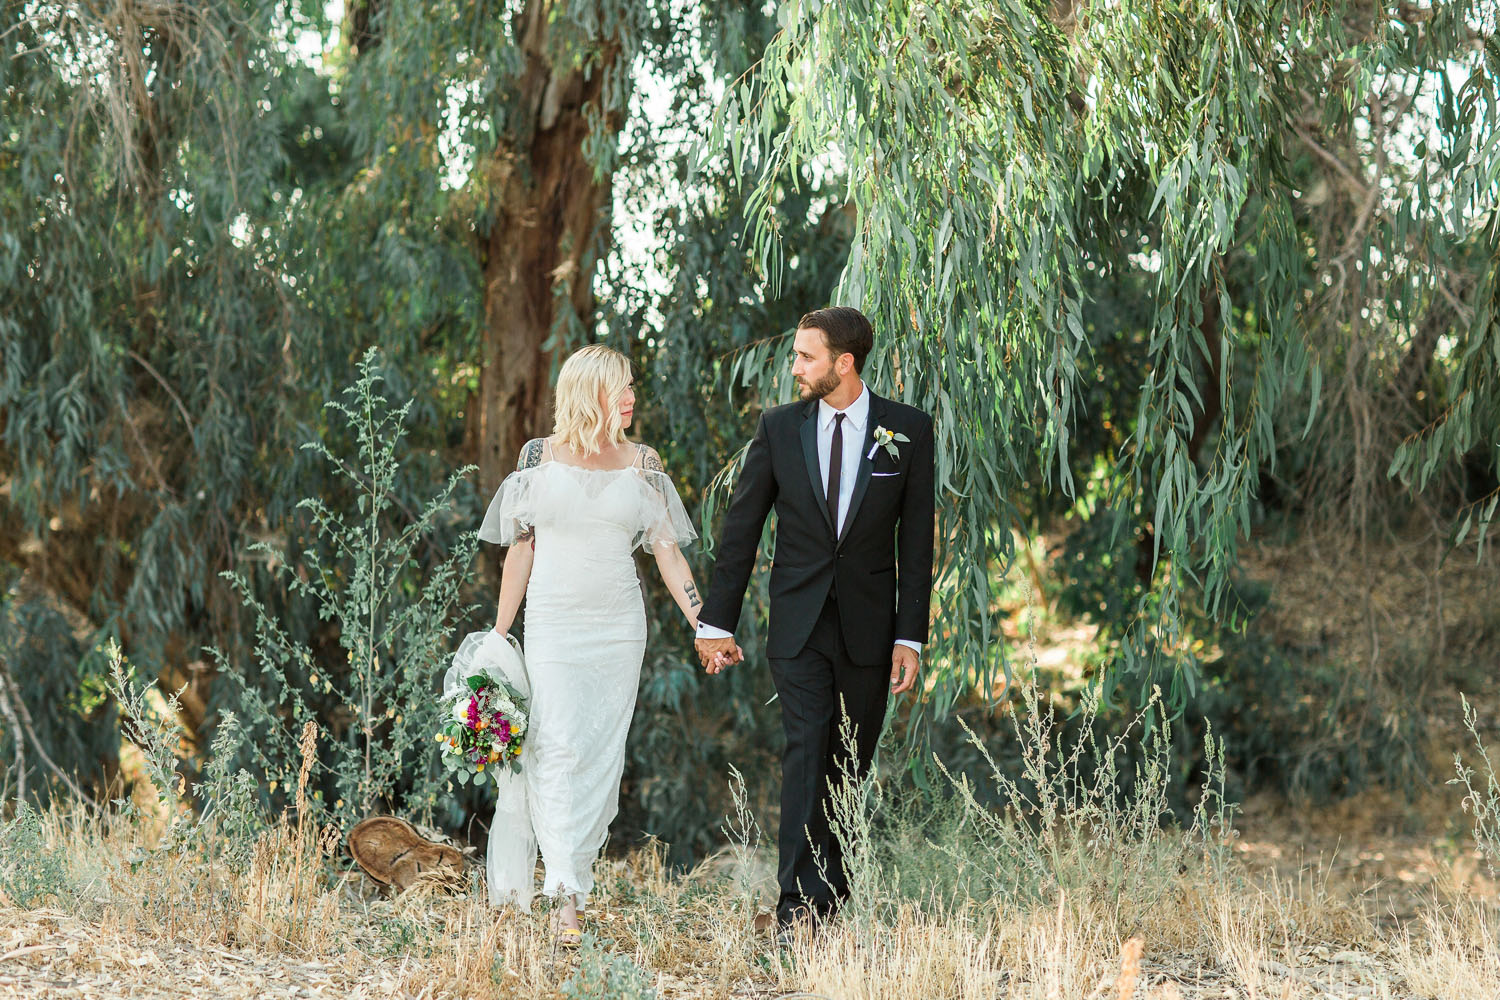 The Photege - Elegant Boho Wedding on Suburu Farm in Bakersfield California- Cassie and Darin Buoni-3011